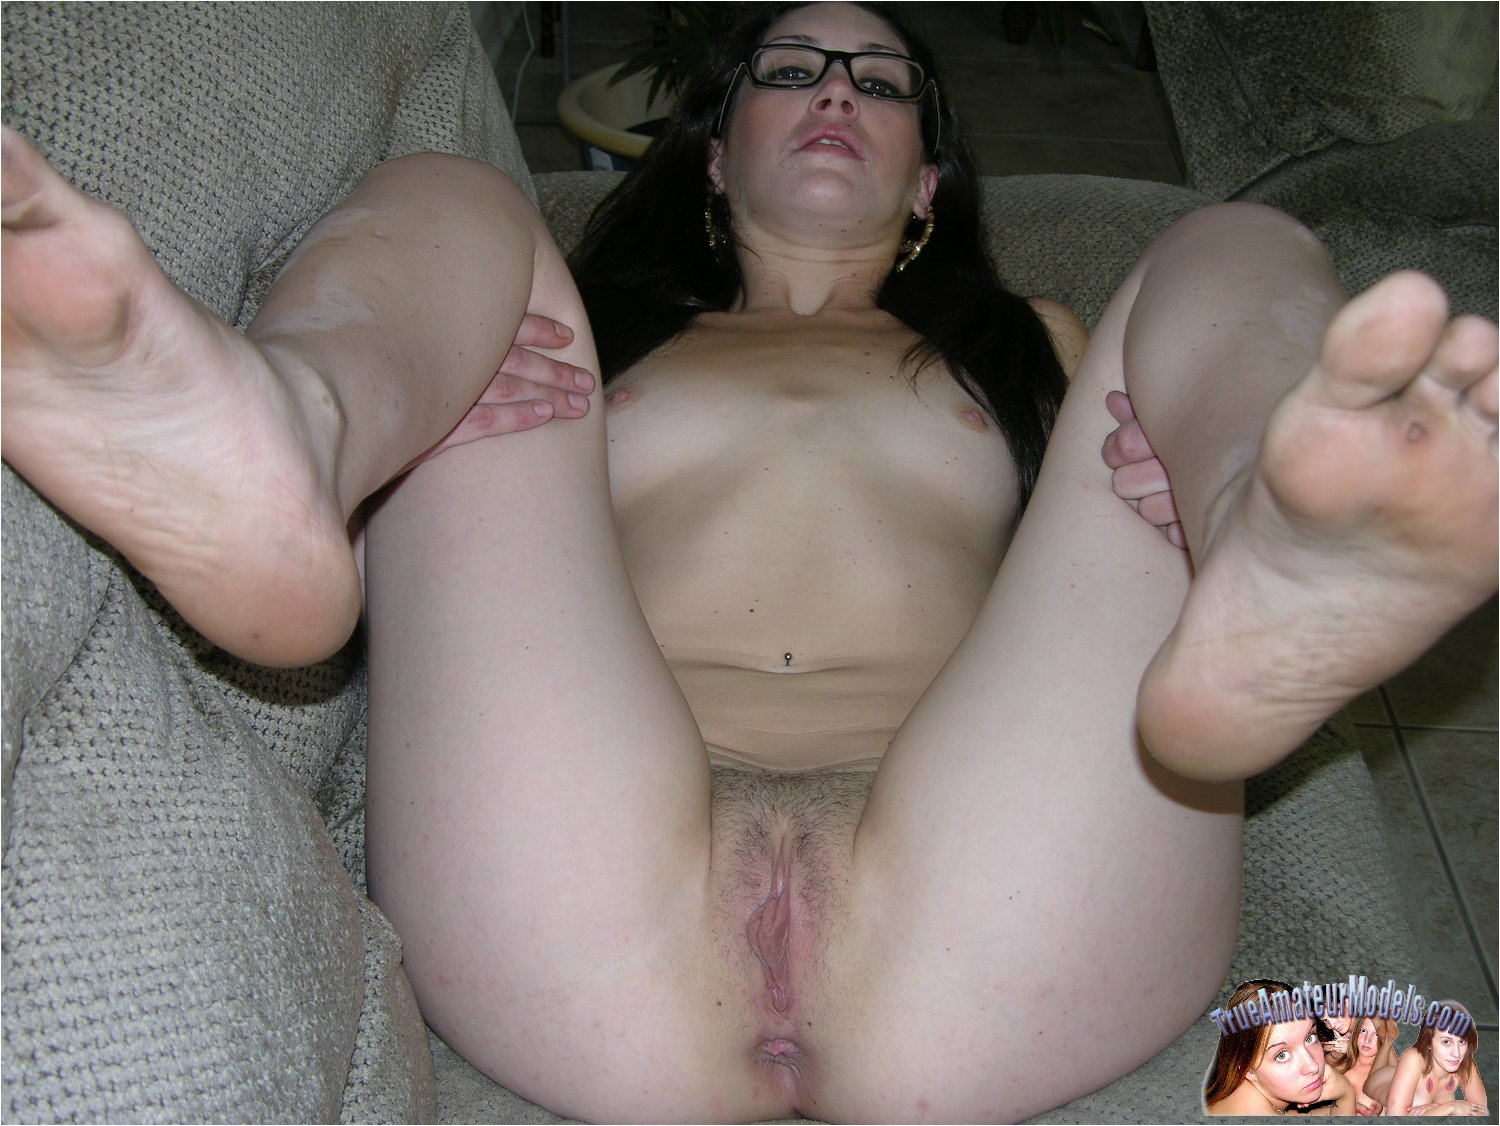 Piss in her mouth nude